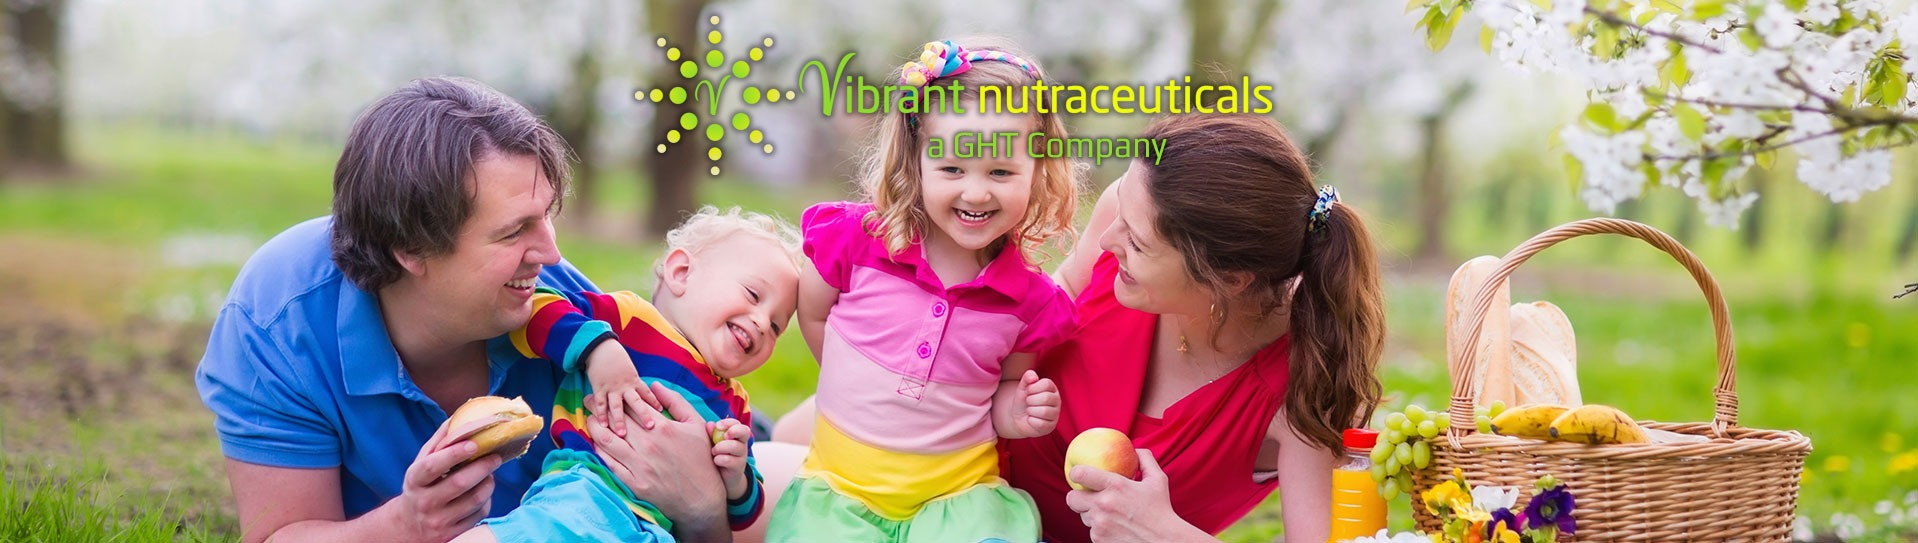 Vibrant Nutraceuticals a GHT company